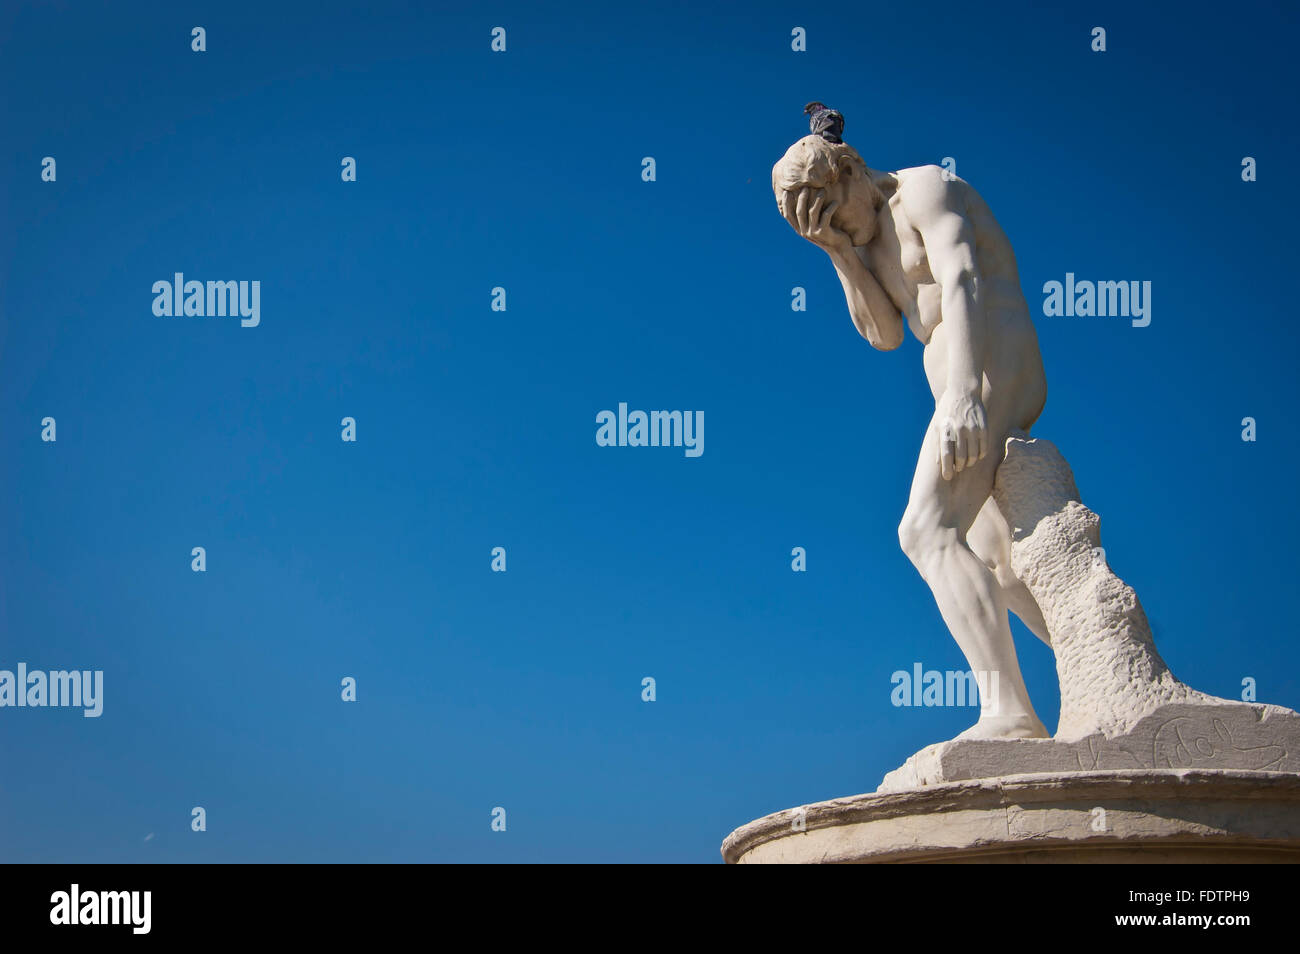 France, Paris, sculpture au Jardin des Tuileries Photo Stock